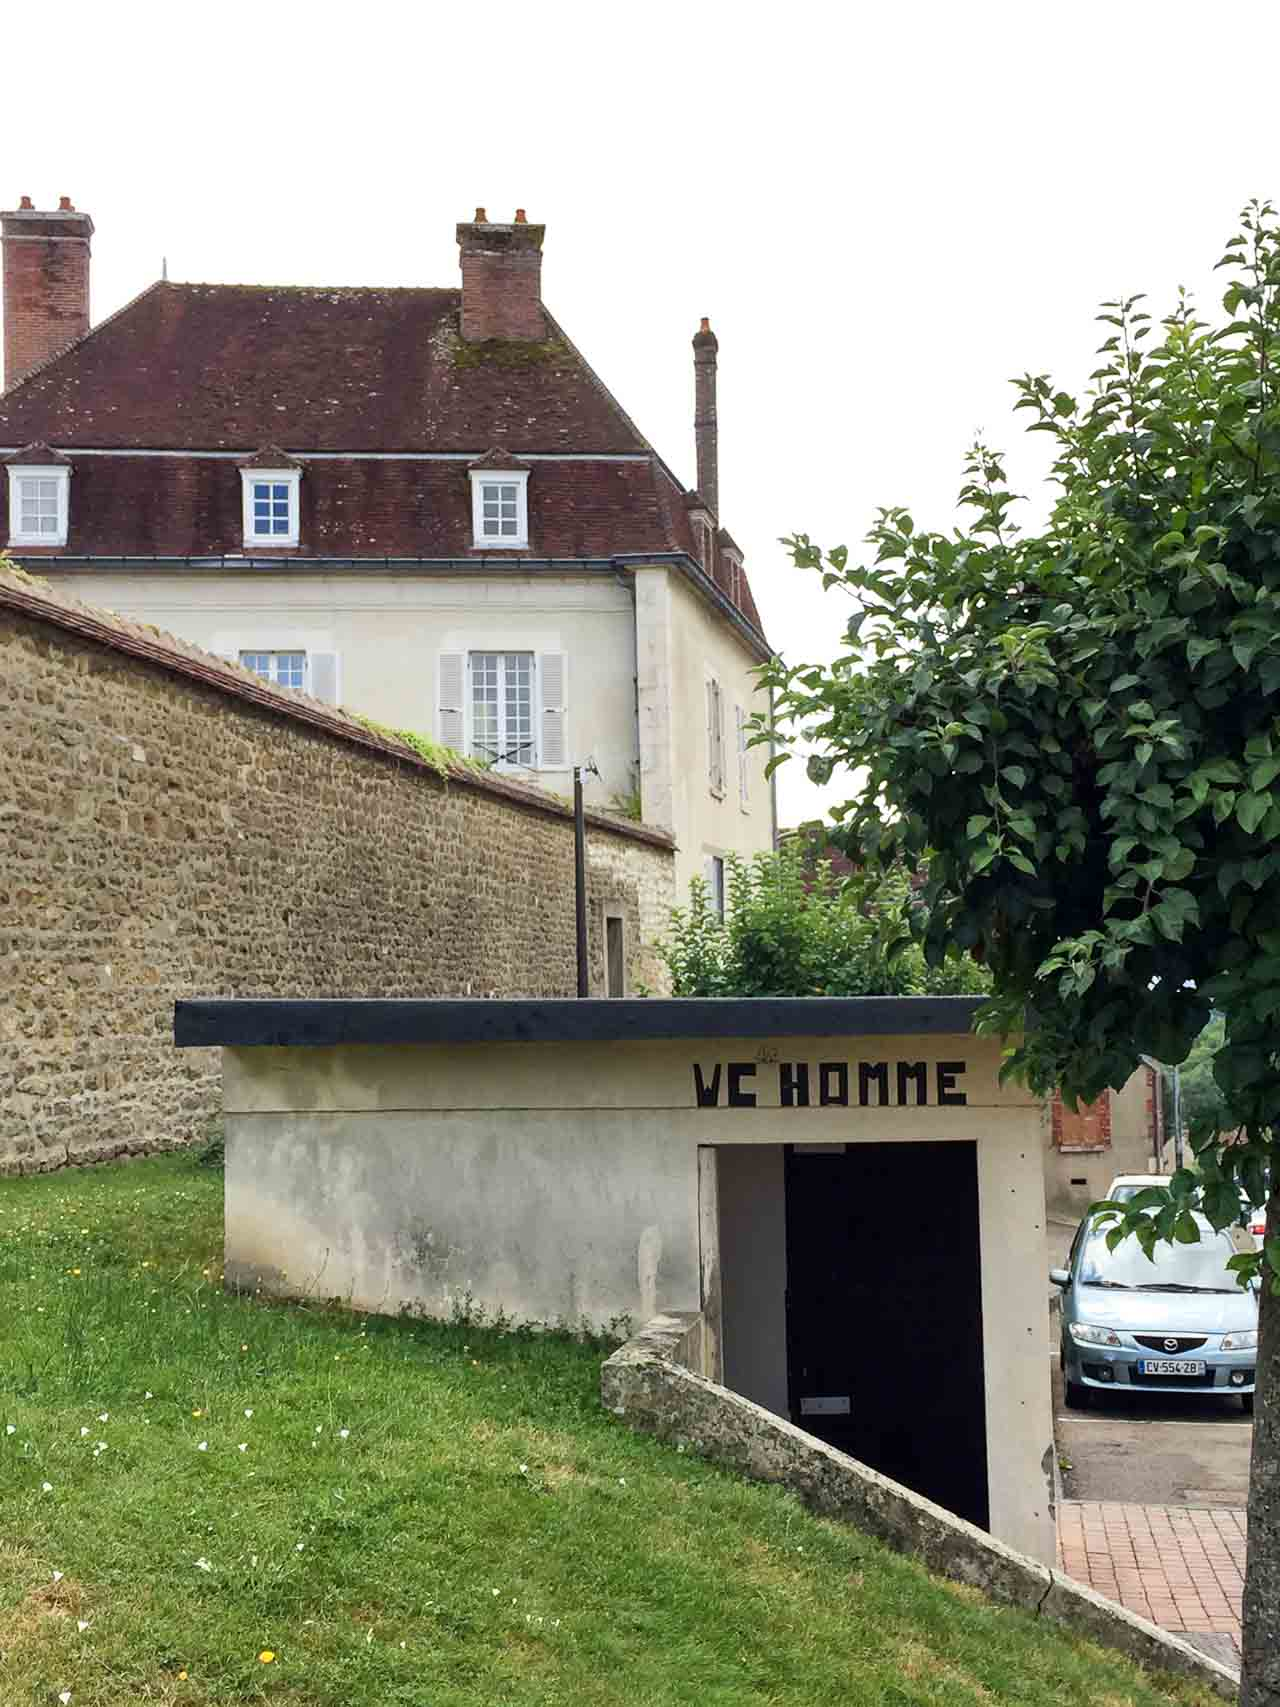 Faire pipi: Finding a restroom in Paris